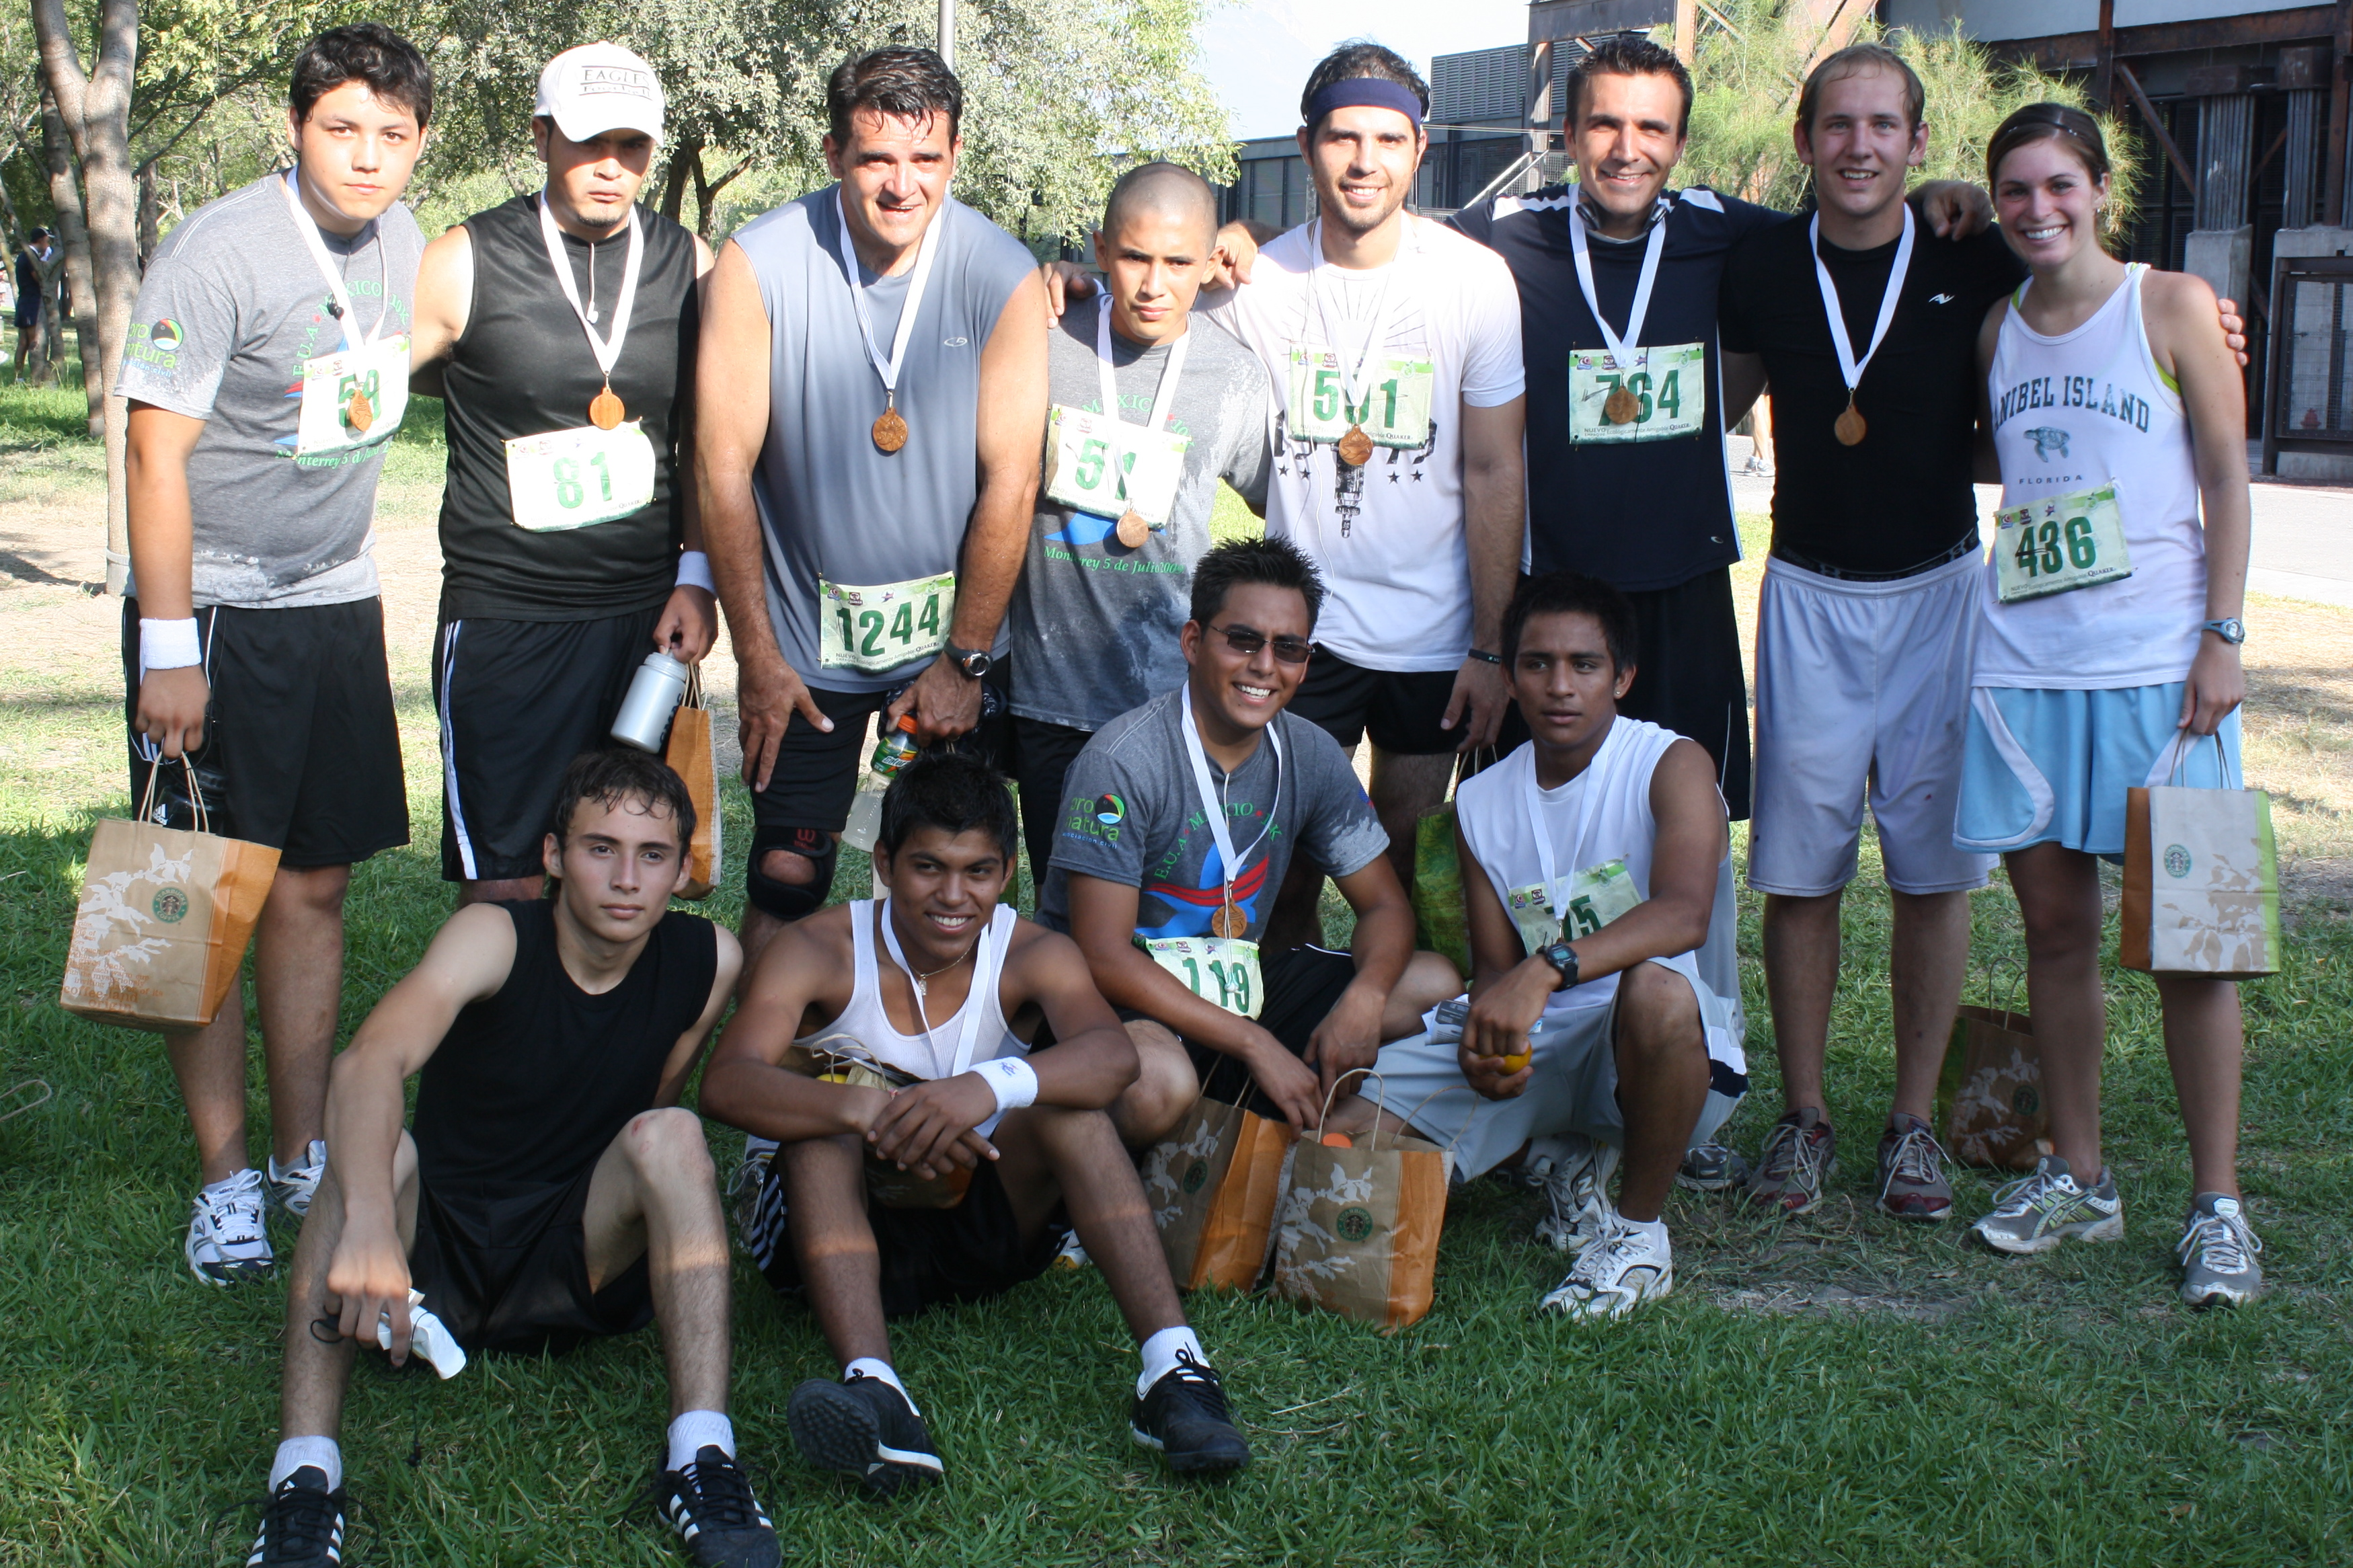 1st row: Ruben, Leo, Cesar, Antonio 2nd row: Oscar, Omar, Tim, Homero, Mauricio, Matt, Shawn, Abby